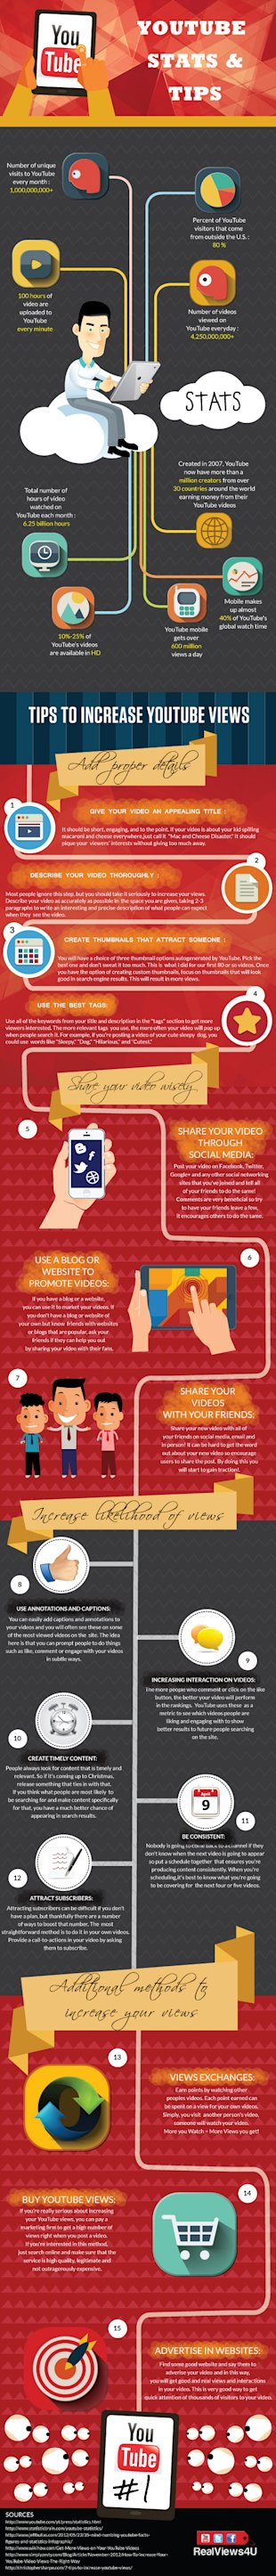 Proven Ways to Get Real YouTube Views [Infographic] image Increase YouTube Views Infographic